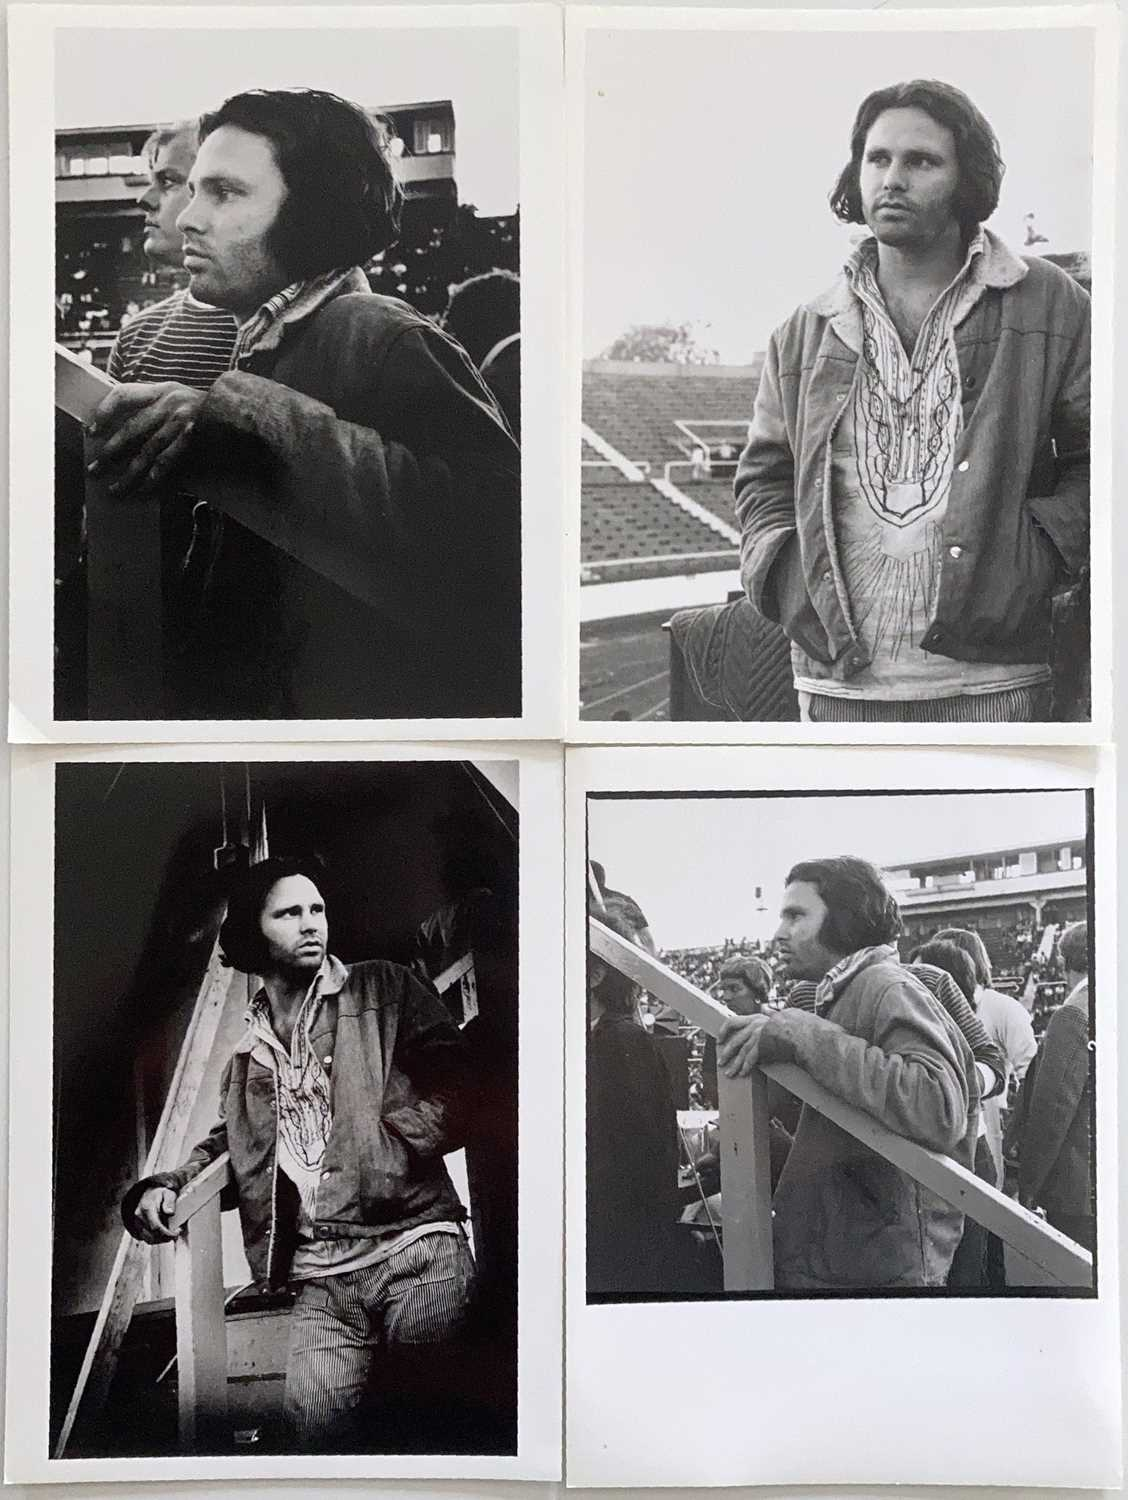 MUSIC PHOTOGRAPHS - THE DOORS. - Image 3 of 5